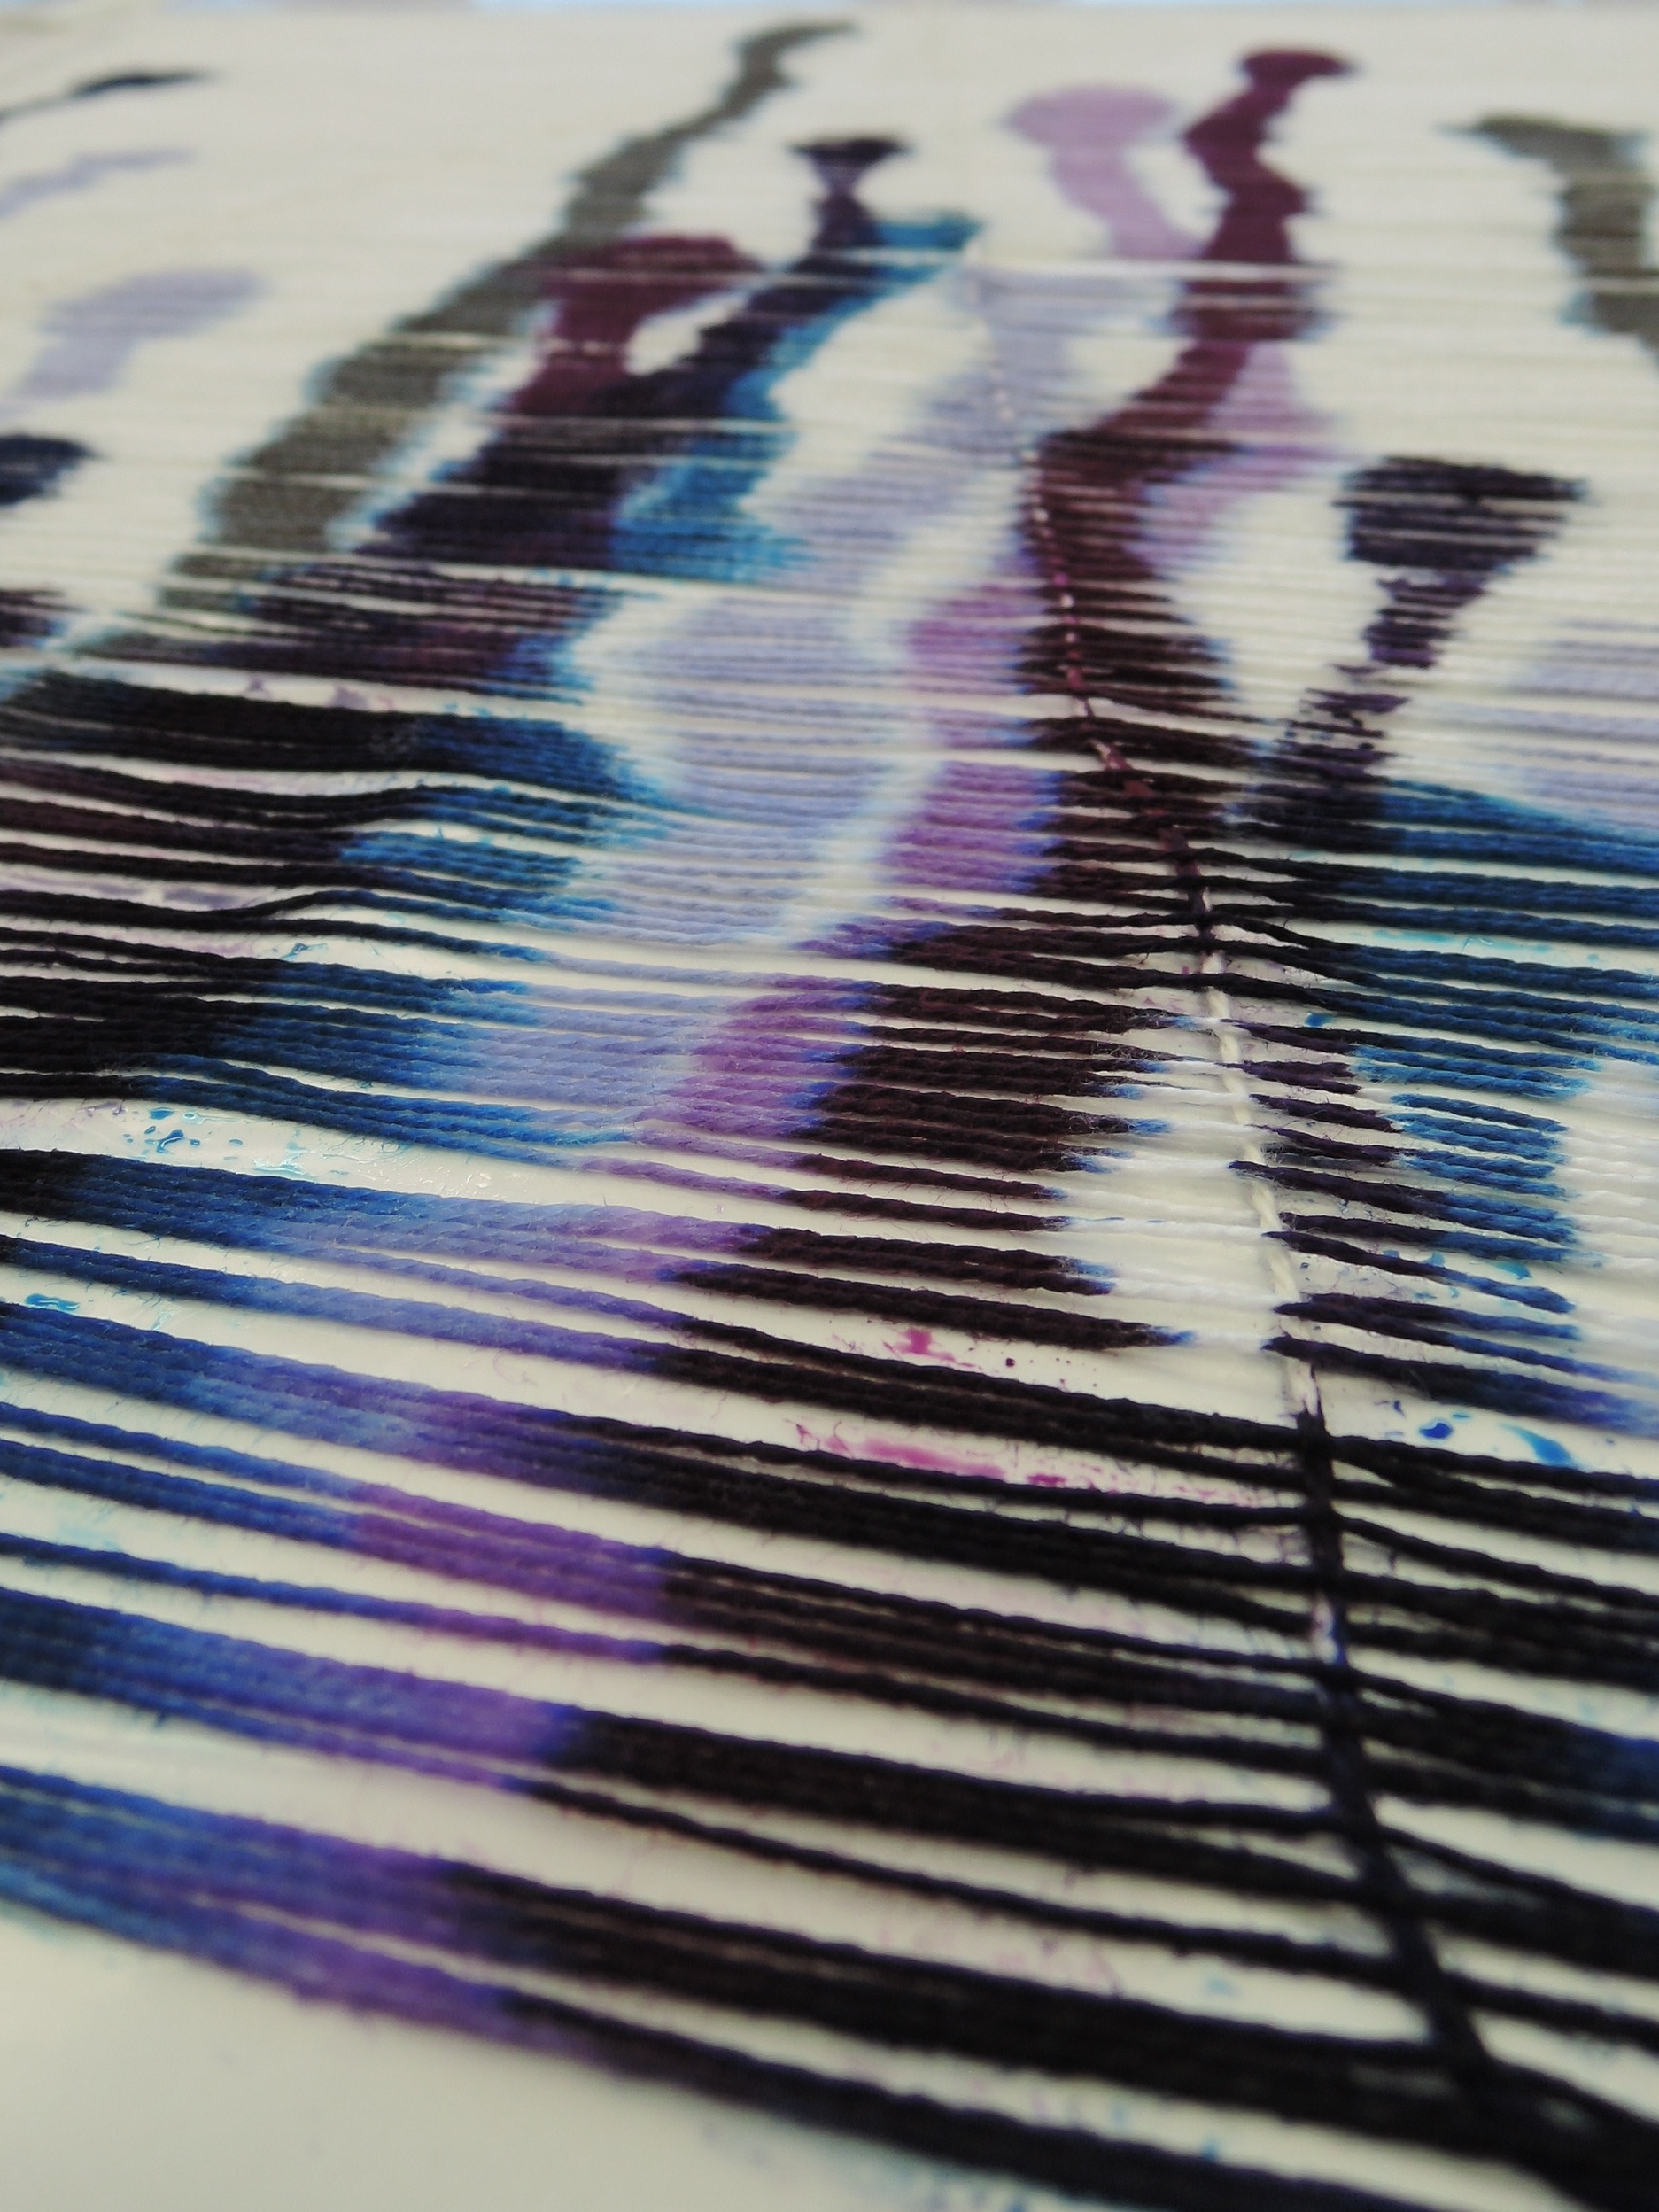 One of the weft threads keeping all the warp threads in line throughout this process.